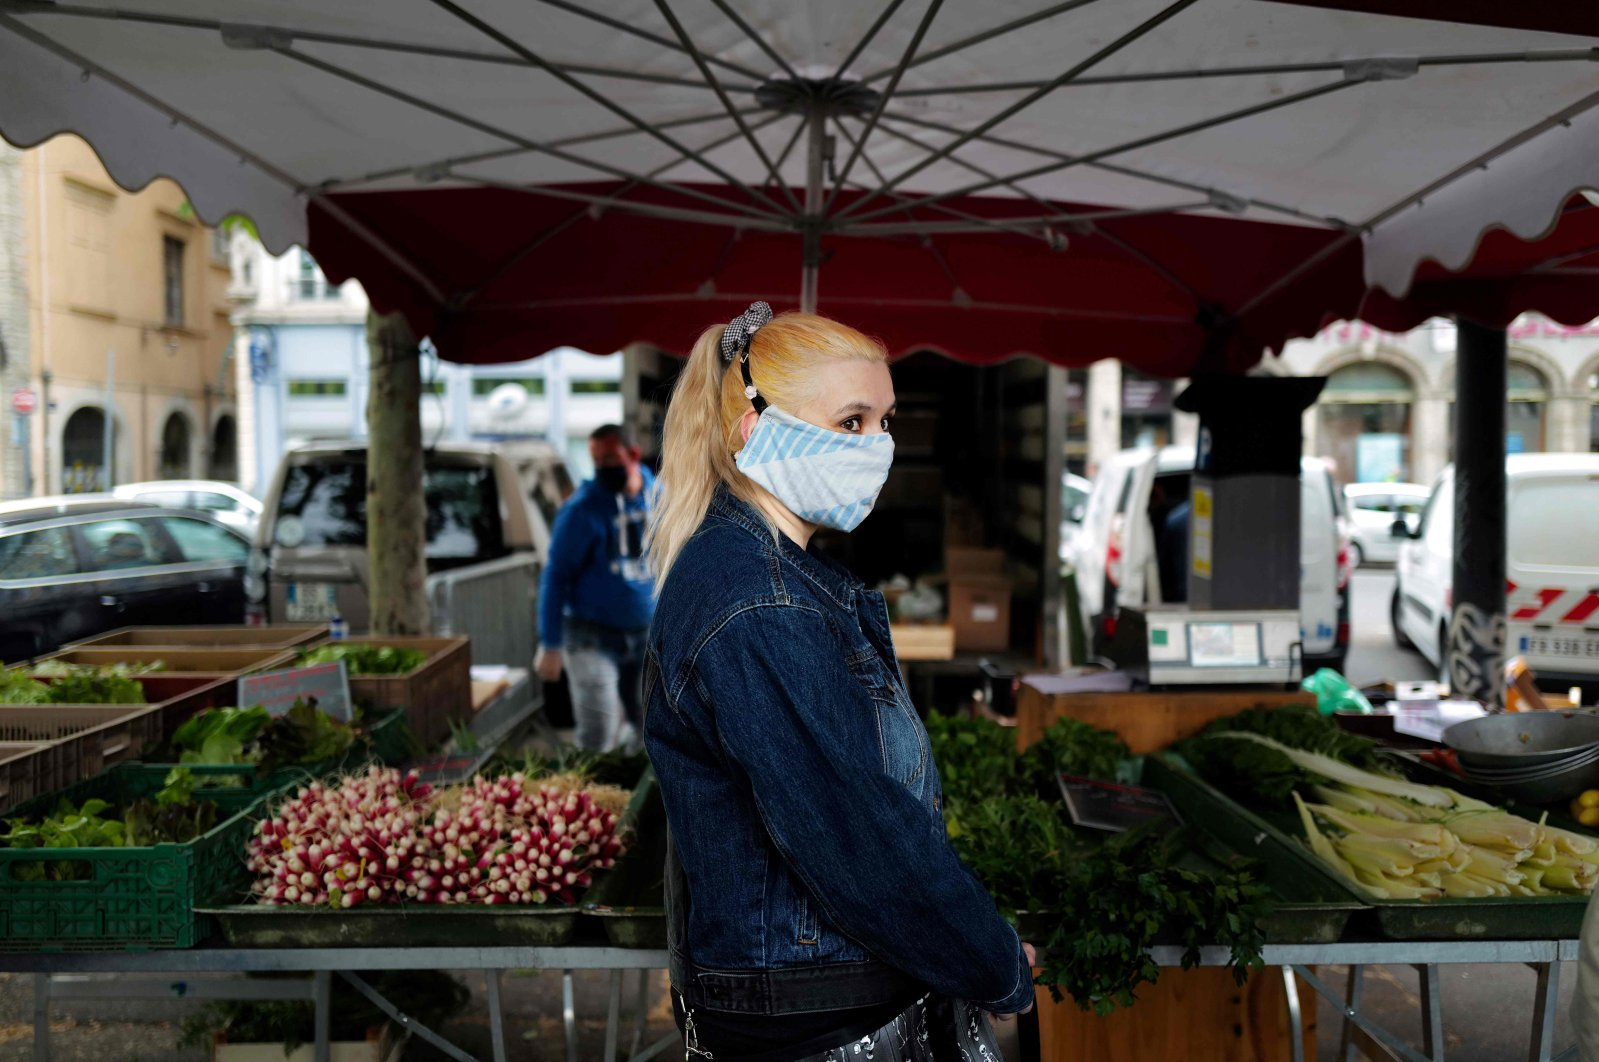 People arrive at the Saint-Antoine market after its re-opening, Lyon, May 5, 2020. (AFP Photo)